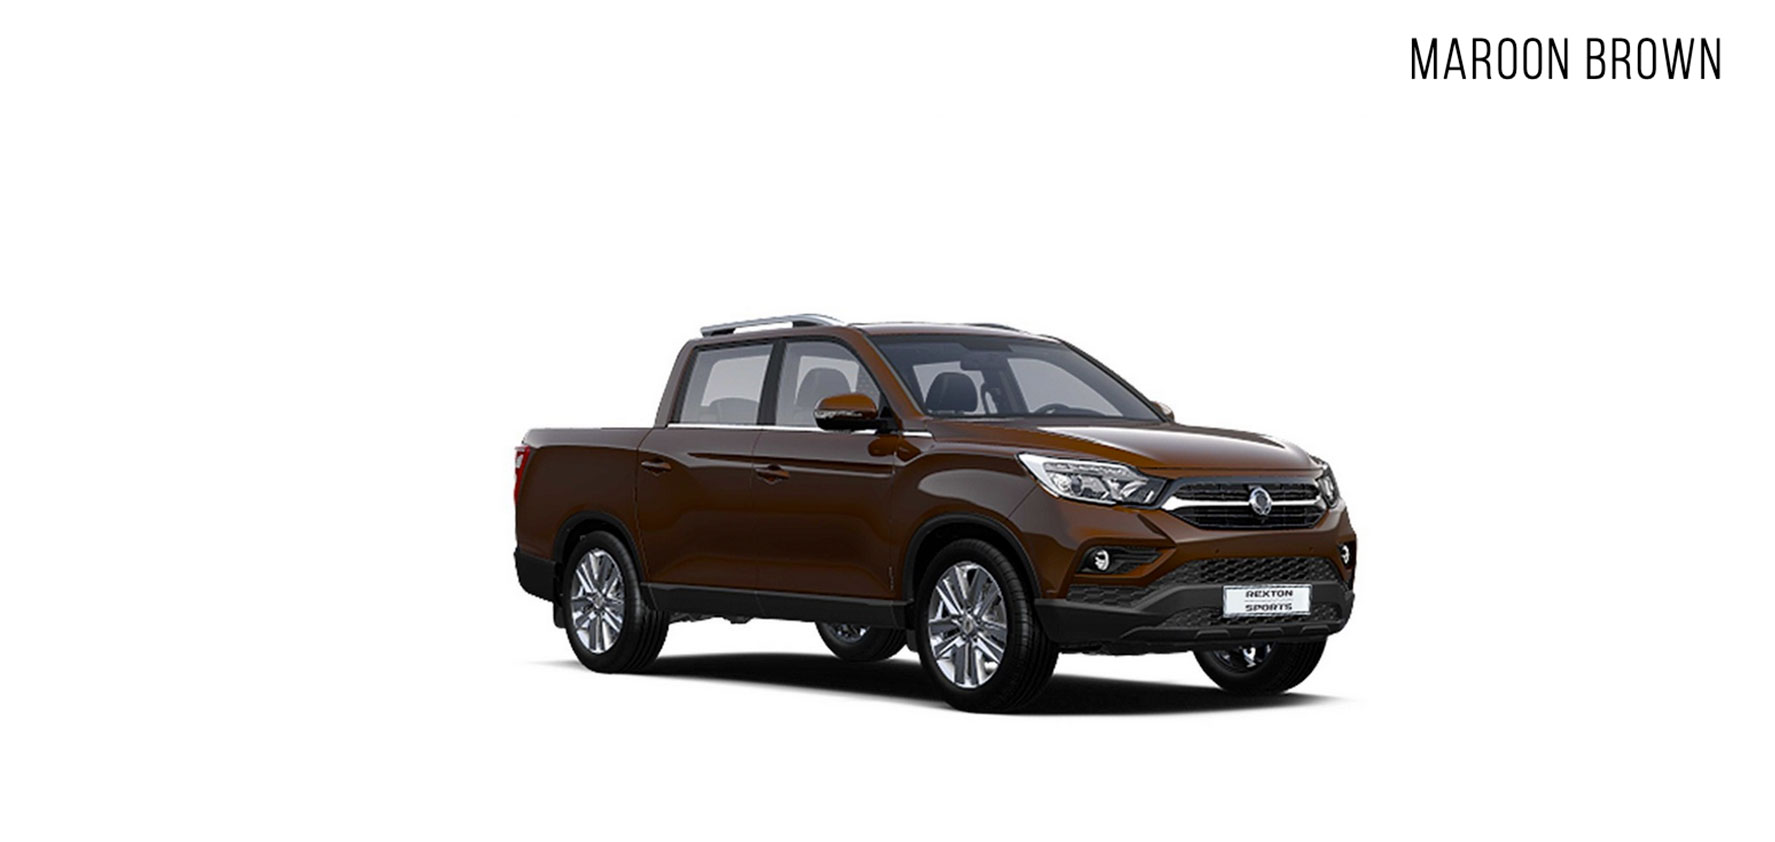 3-maroon-brown-rexton-sports-ssangyong-vercelli